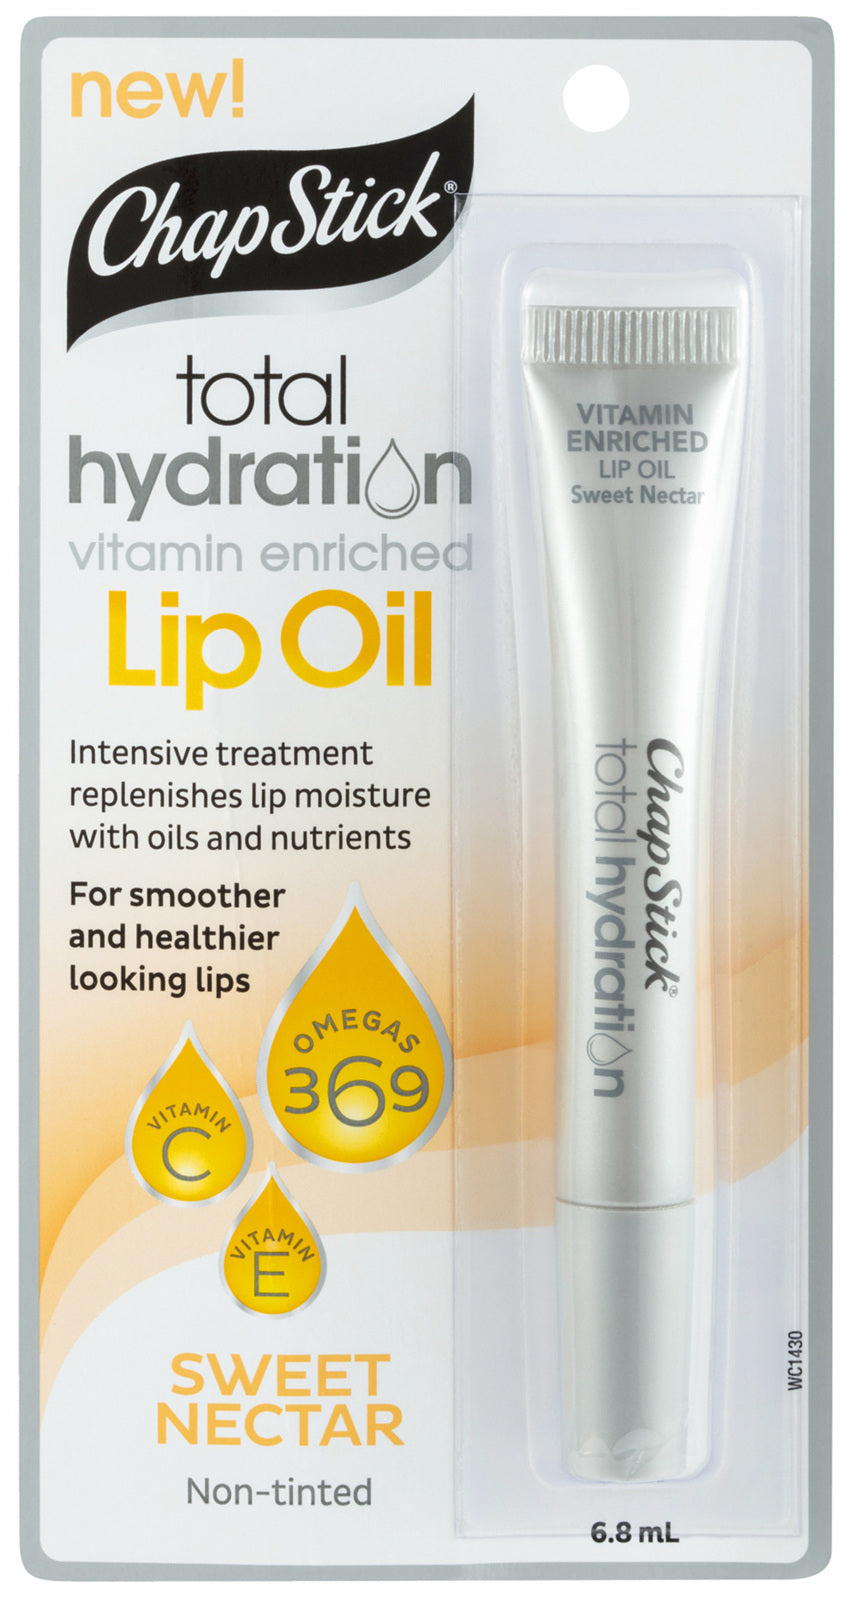 ChapStick 6.8Ml Total Hydration Vitamin Enriched Lip Oil Sweet Nectar